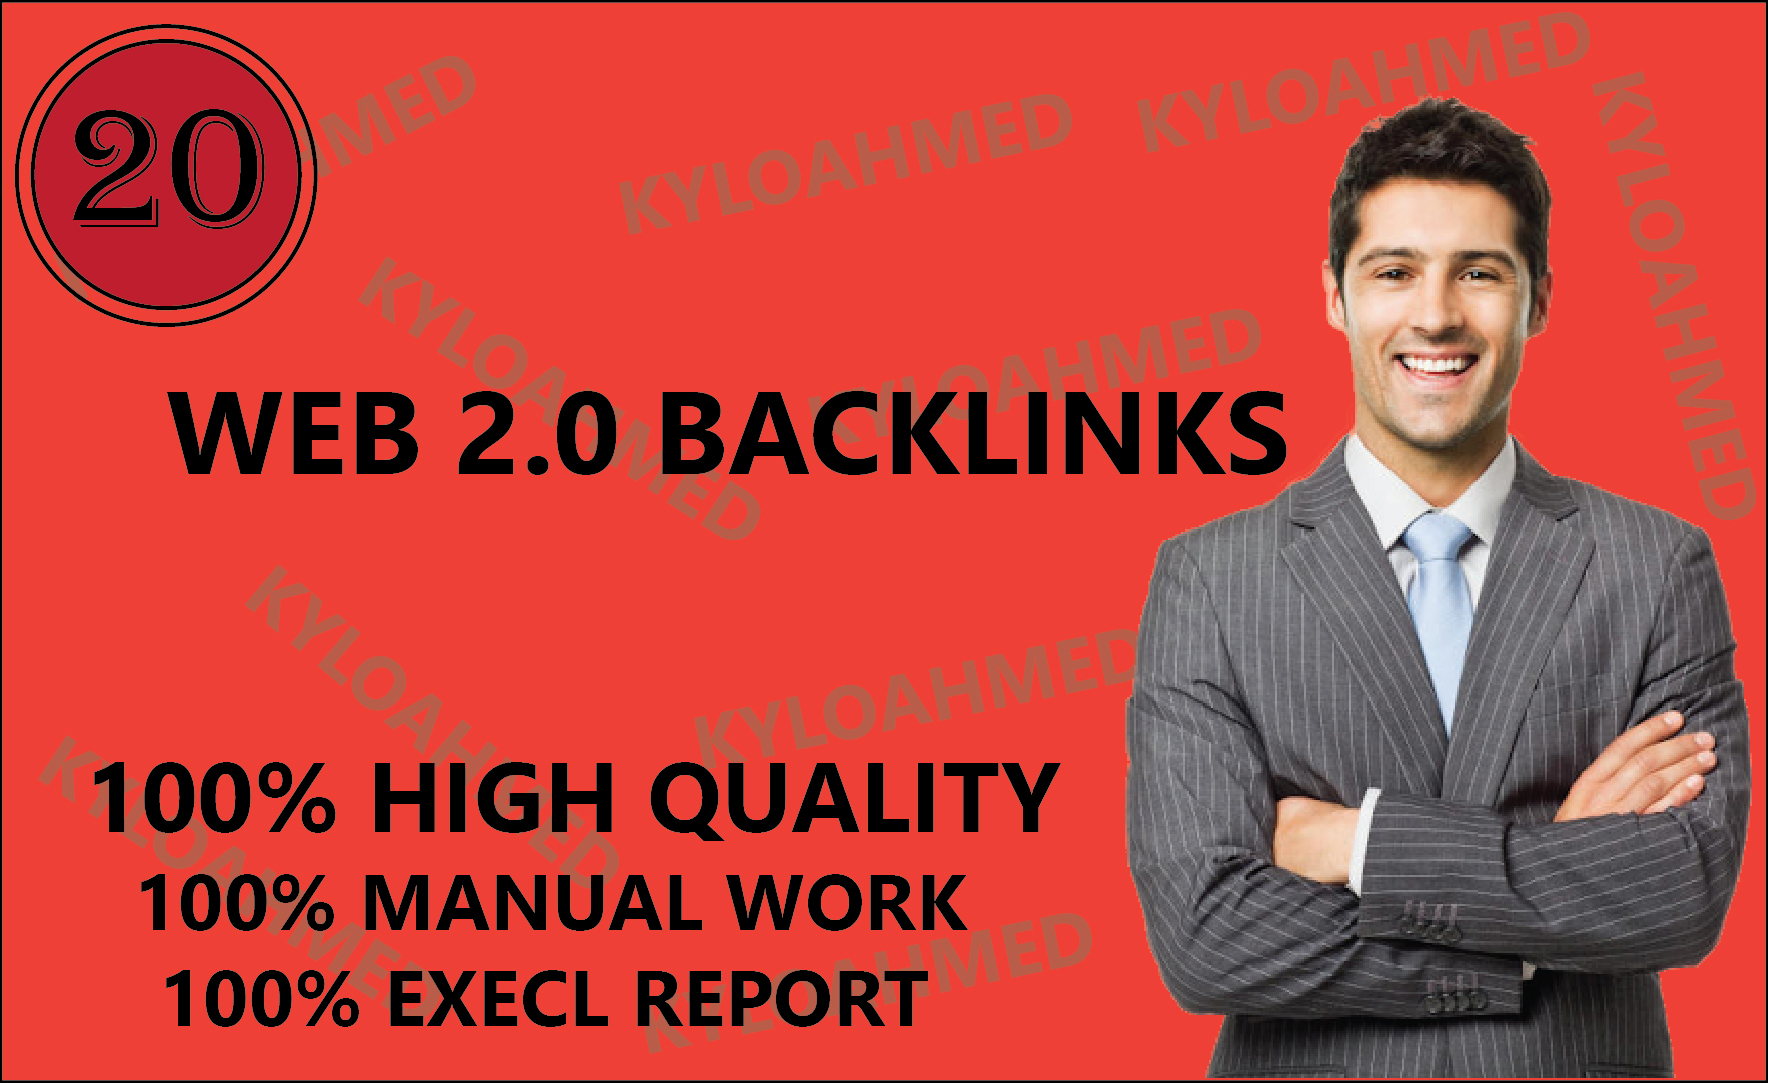 I will build 20 manually web 2.0 backlinks and high quality backlinks